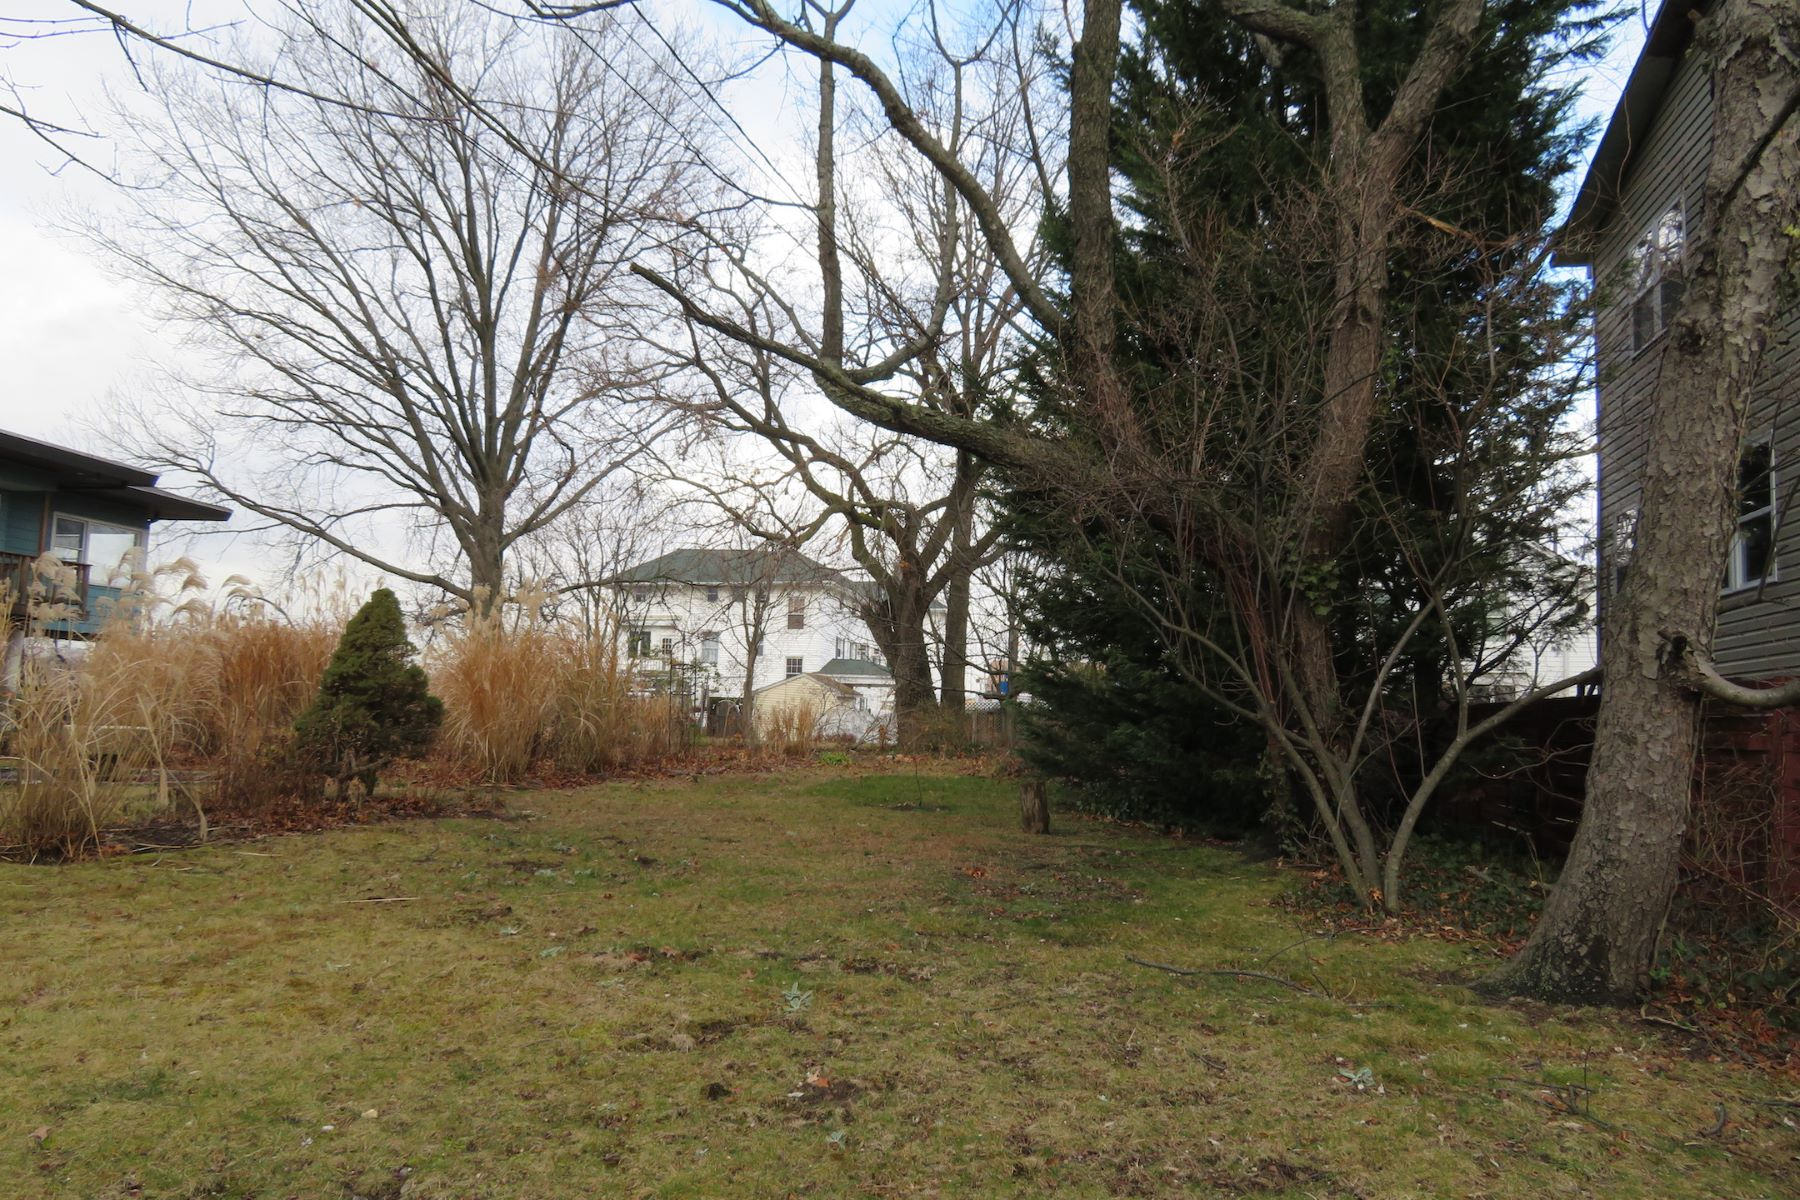 Land for Sale at 77 Ditmars 77 Ditmars Street Bronx, New York, 10464 United States